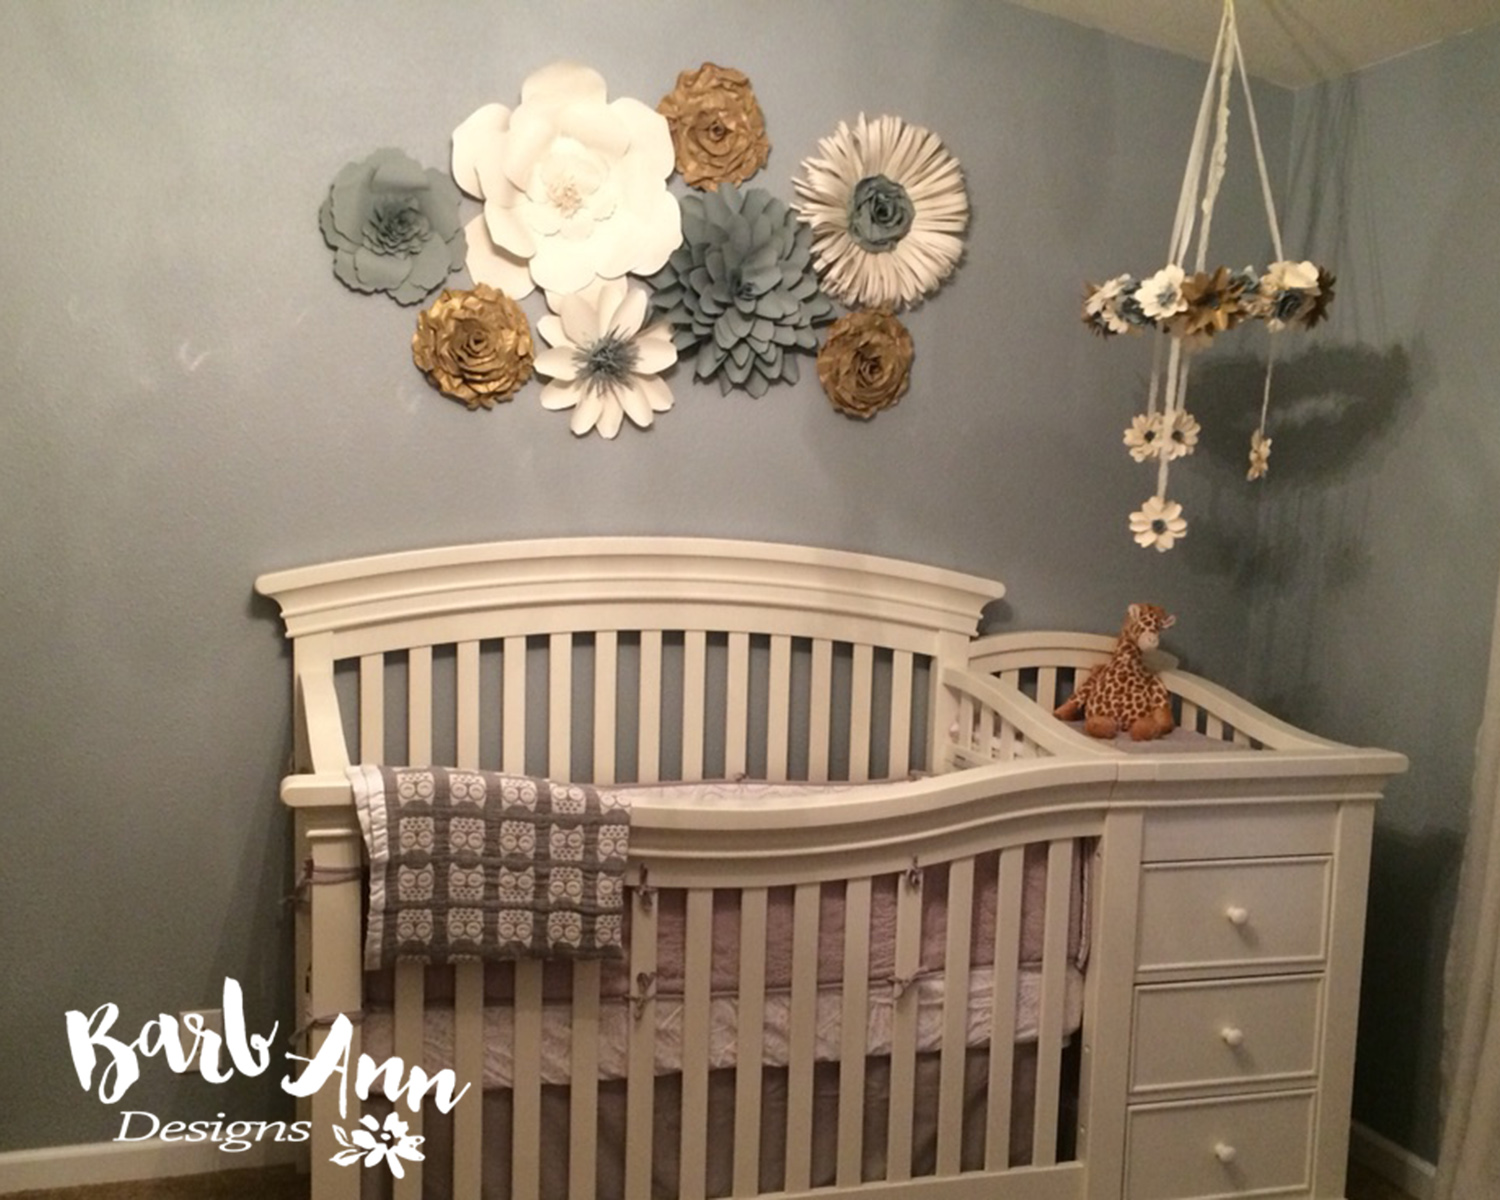 Nursery Set With Cream Gray And Gold Tones Barb Ann Designs